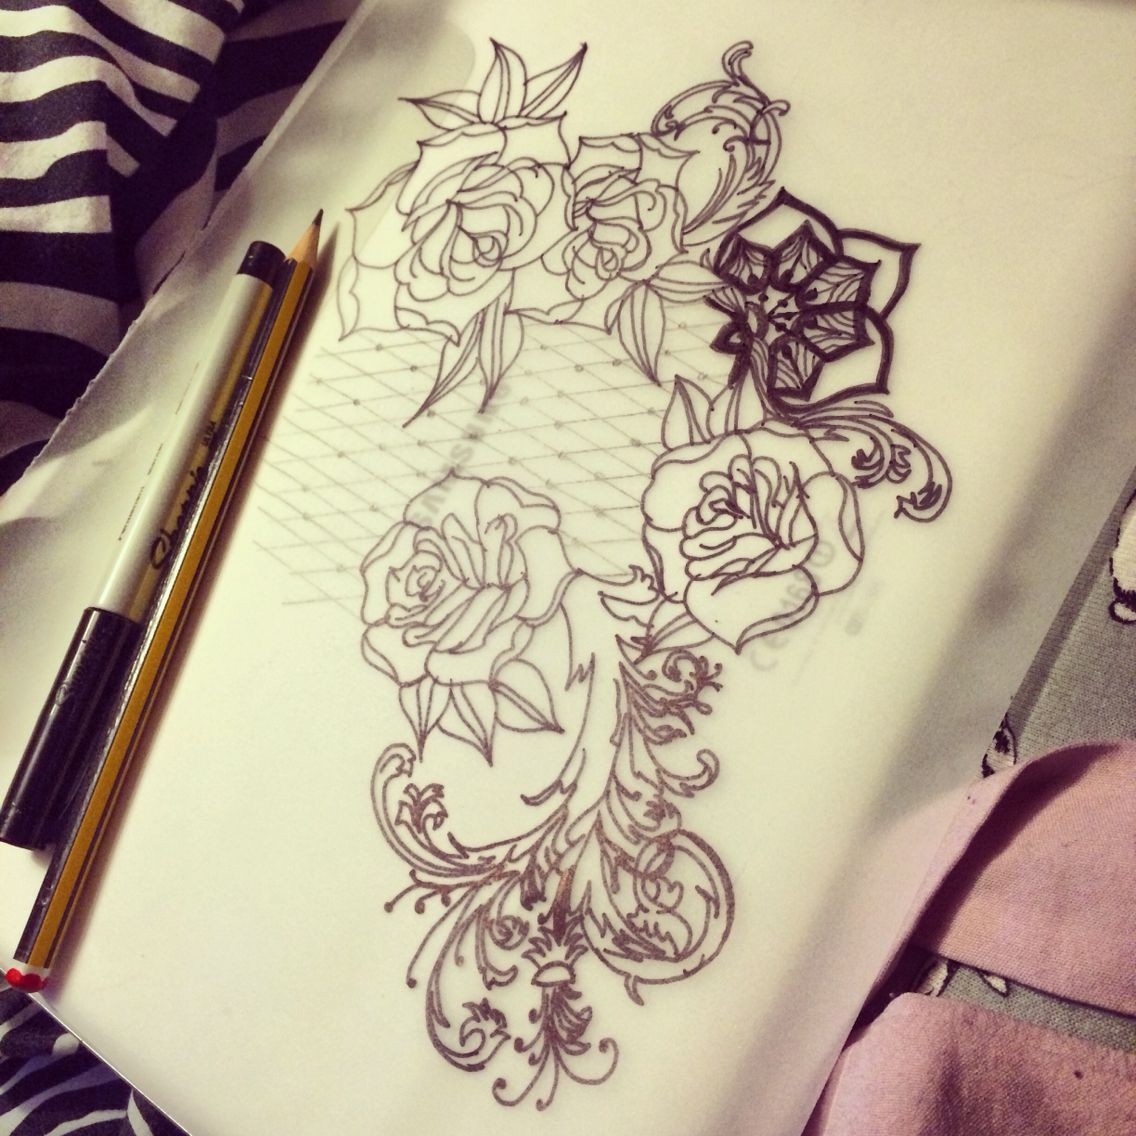 black grey rose lace filigree tattoo extension to existing one tatts pinterest. Black Bedroom Furniture Sets. Home Design Ideas